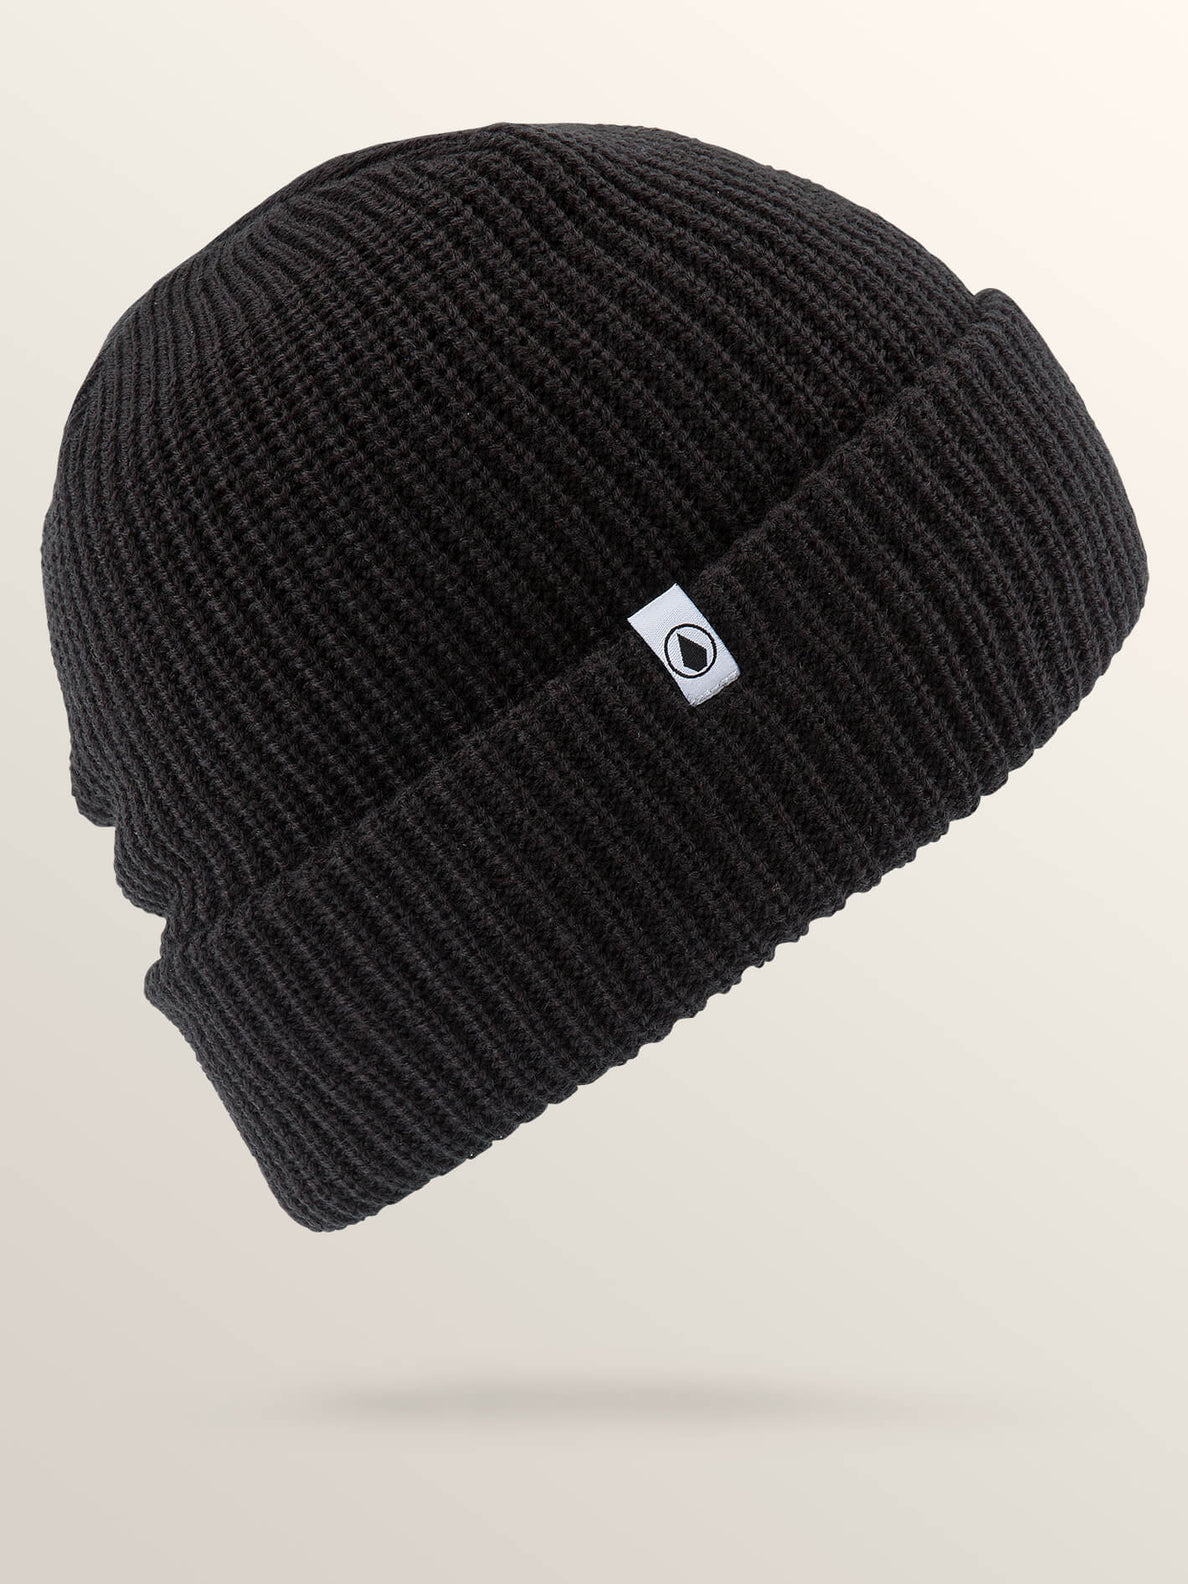 Naval Beanie In Black, Front View